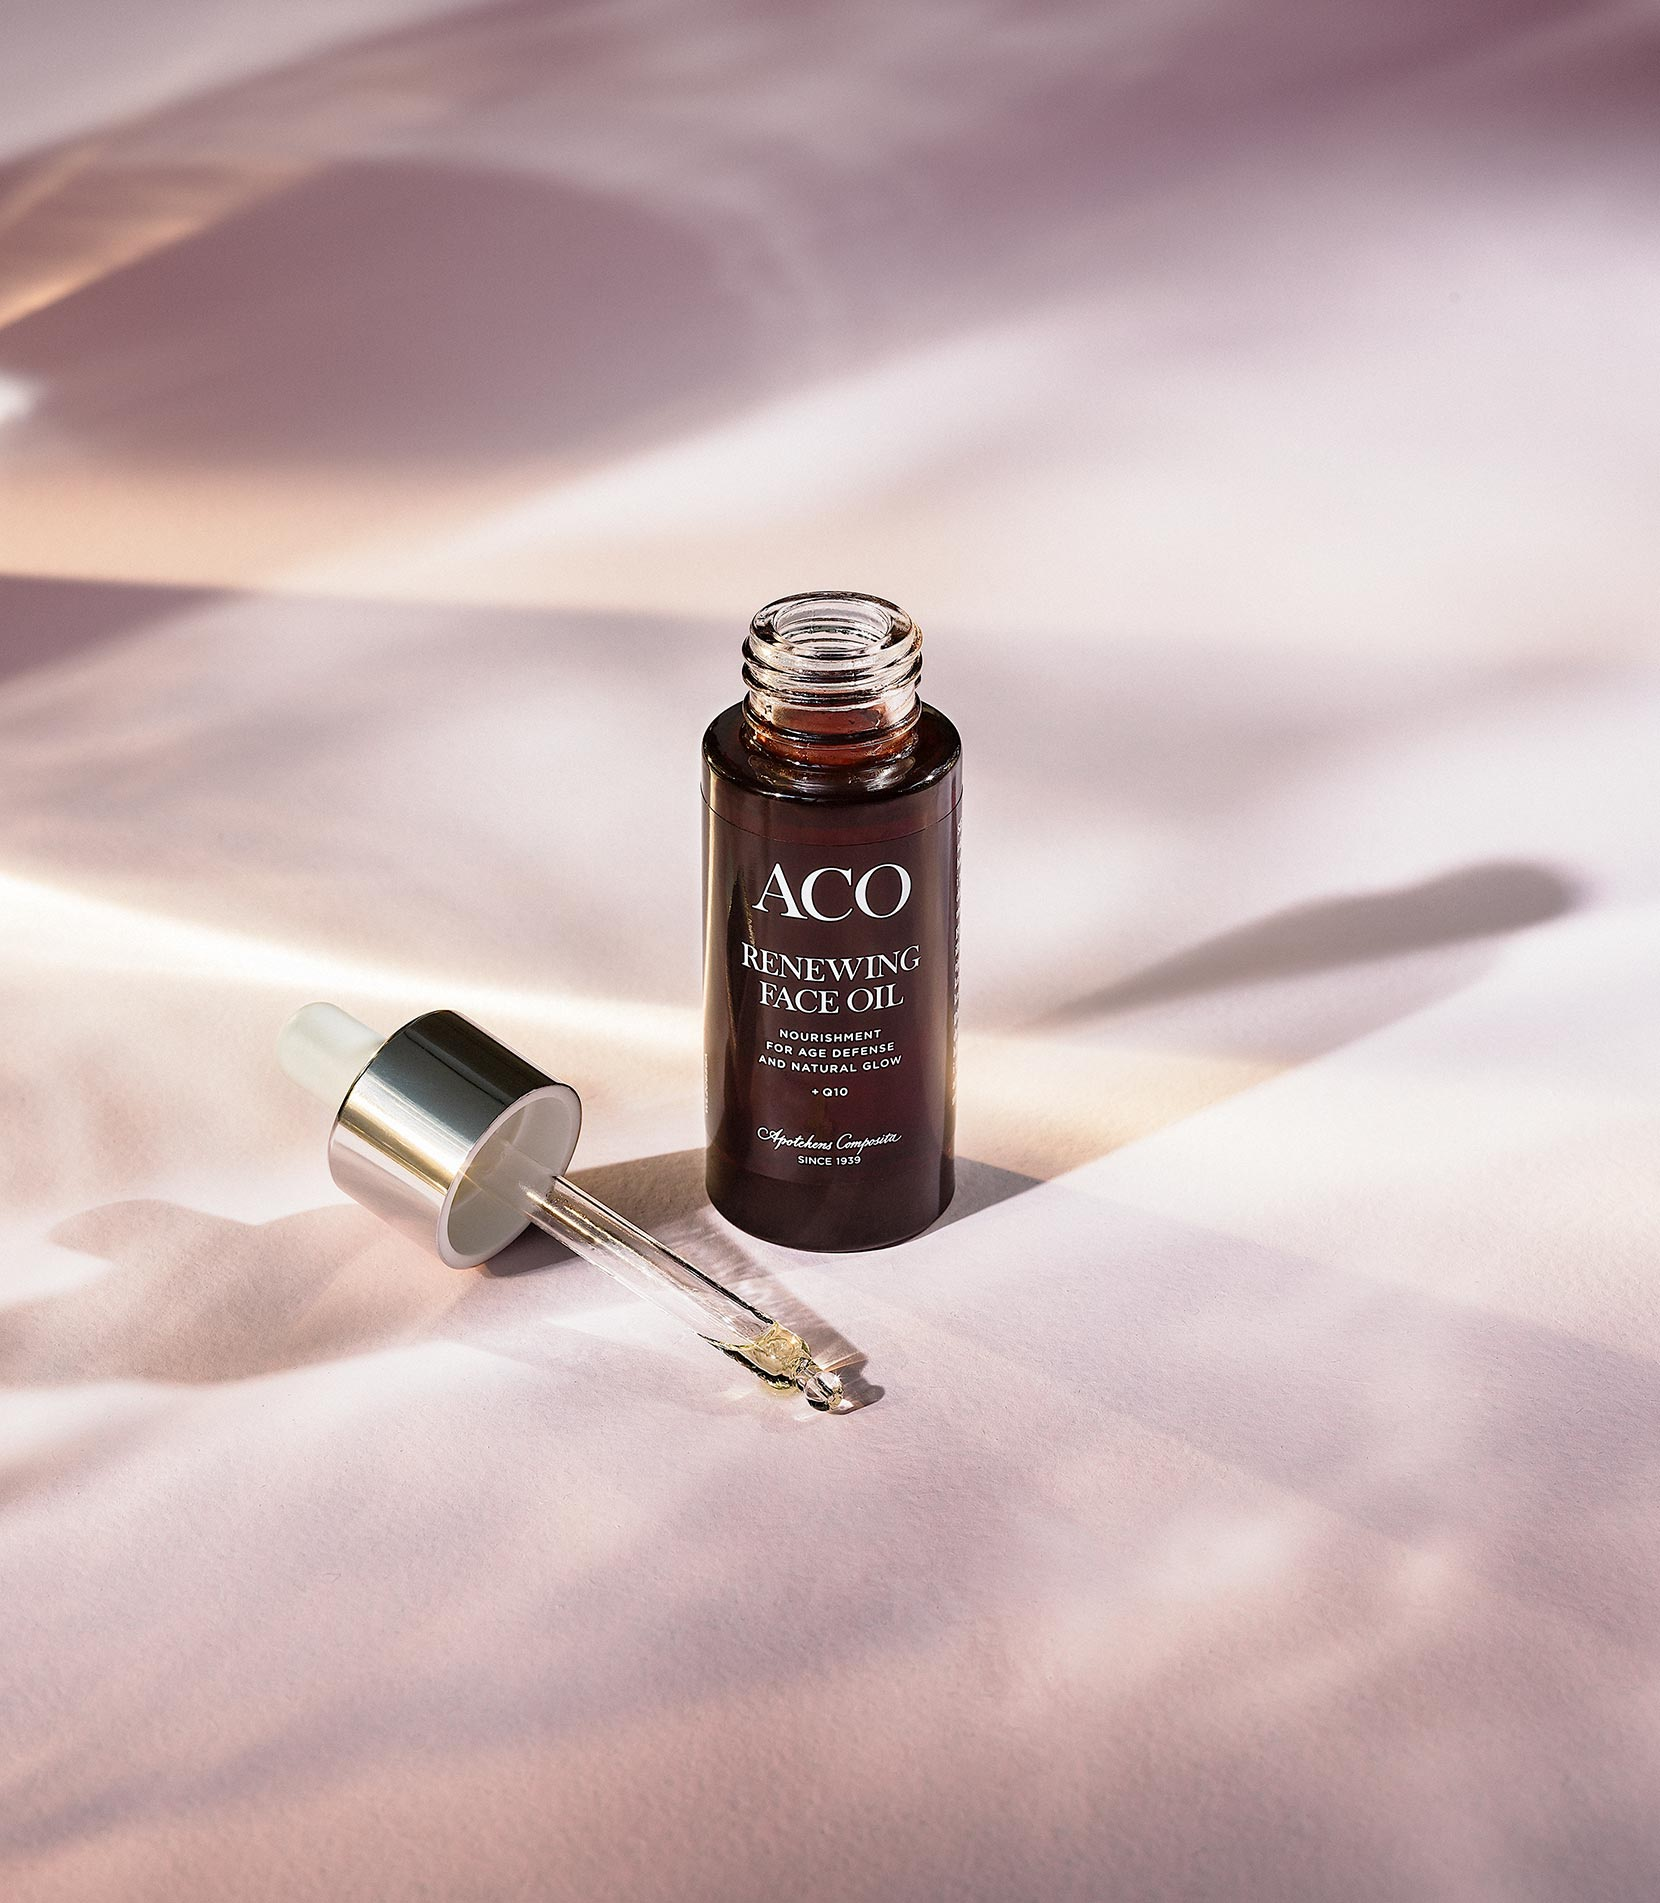 ACO Renewing Face Oil